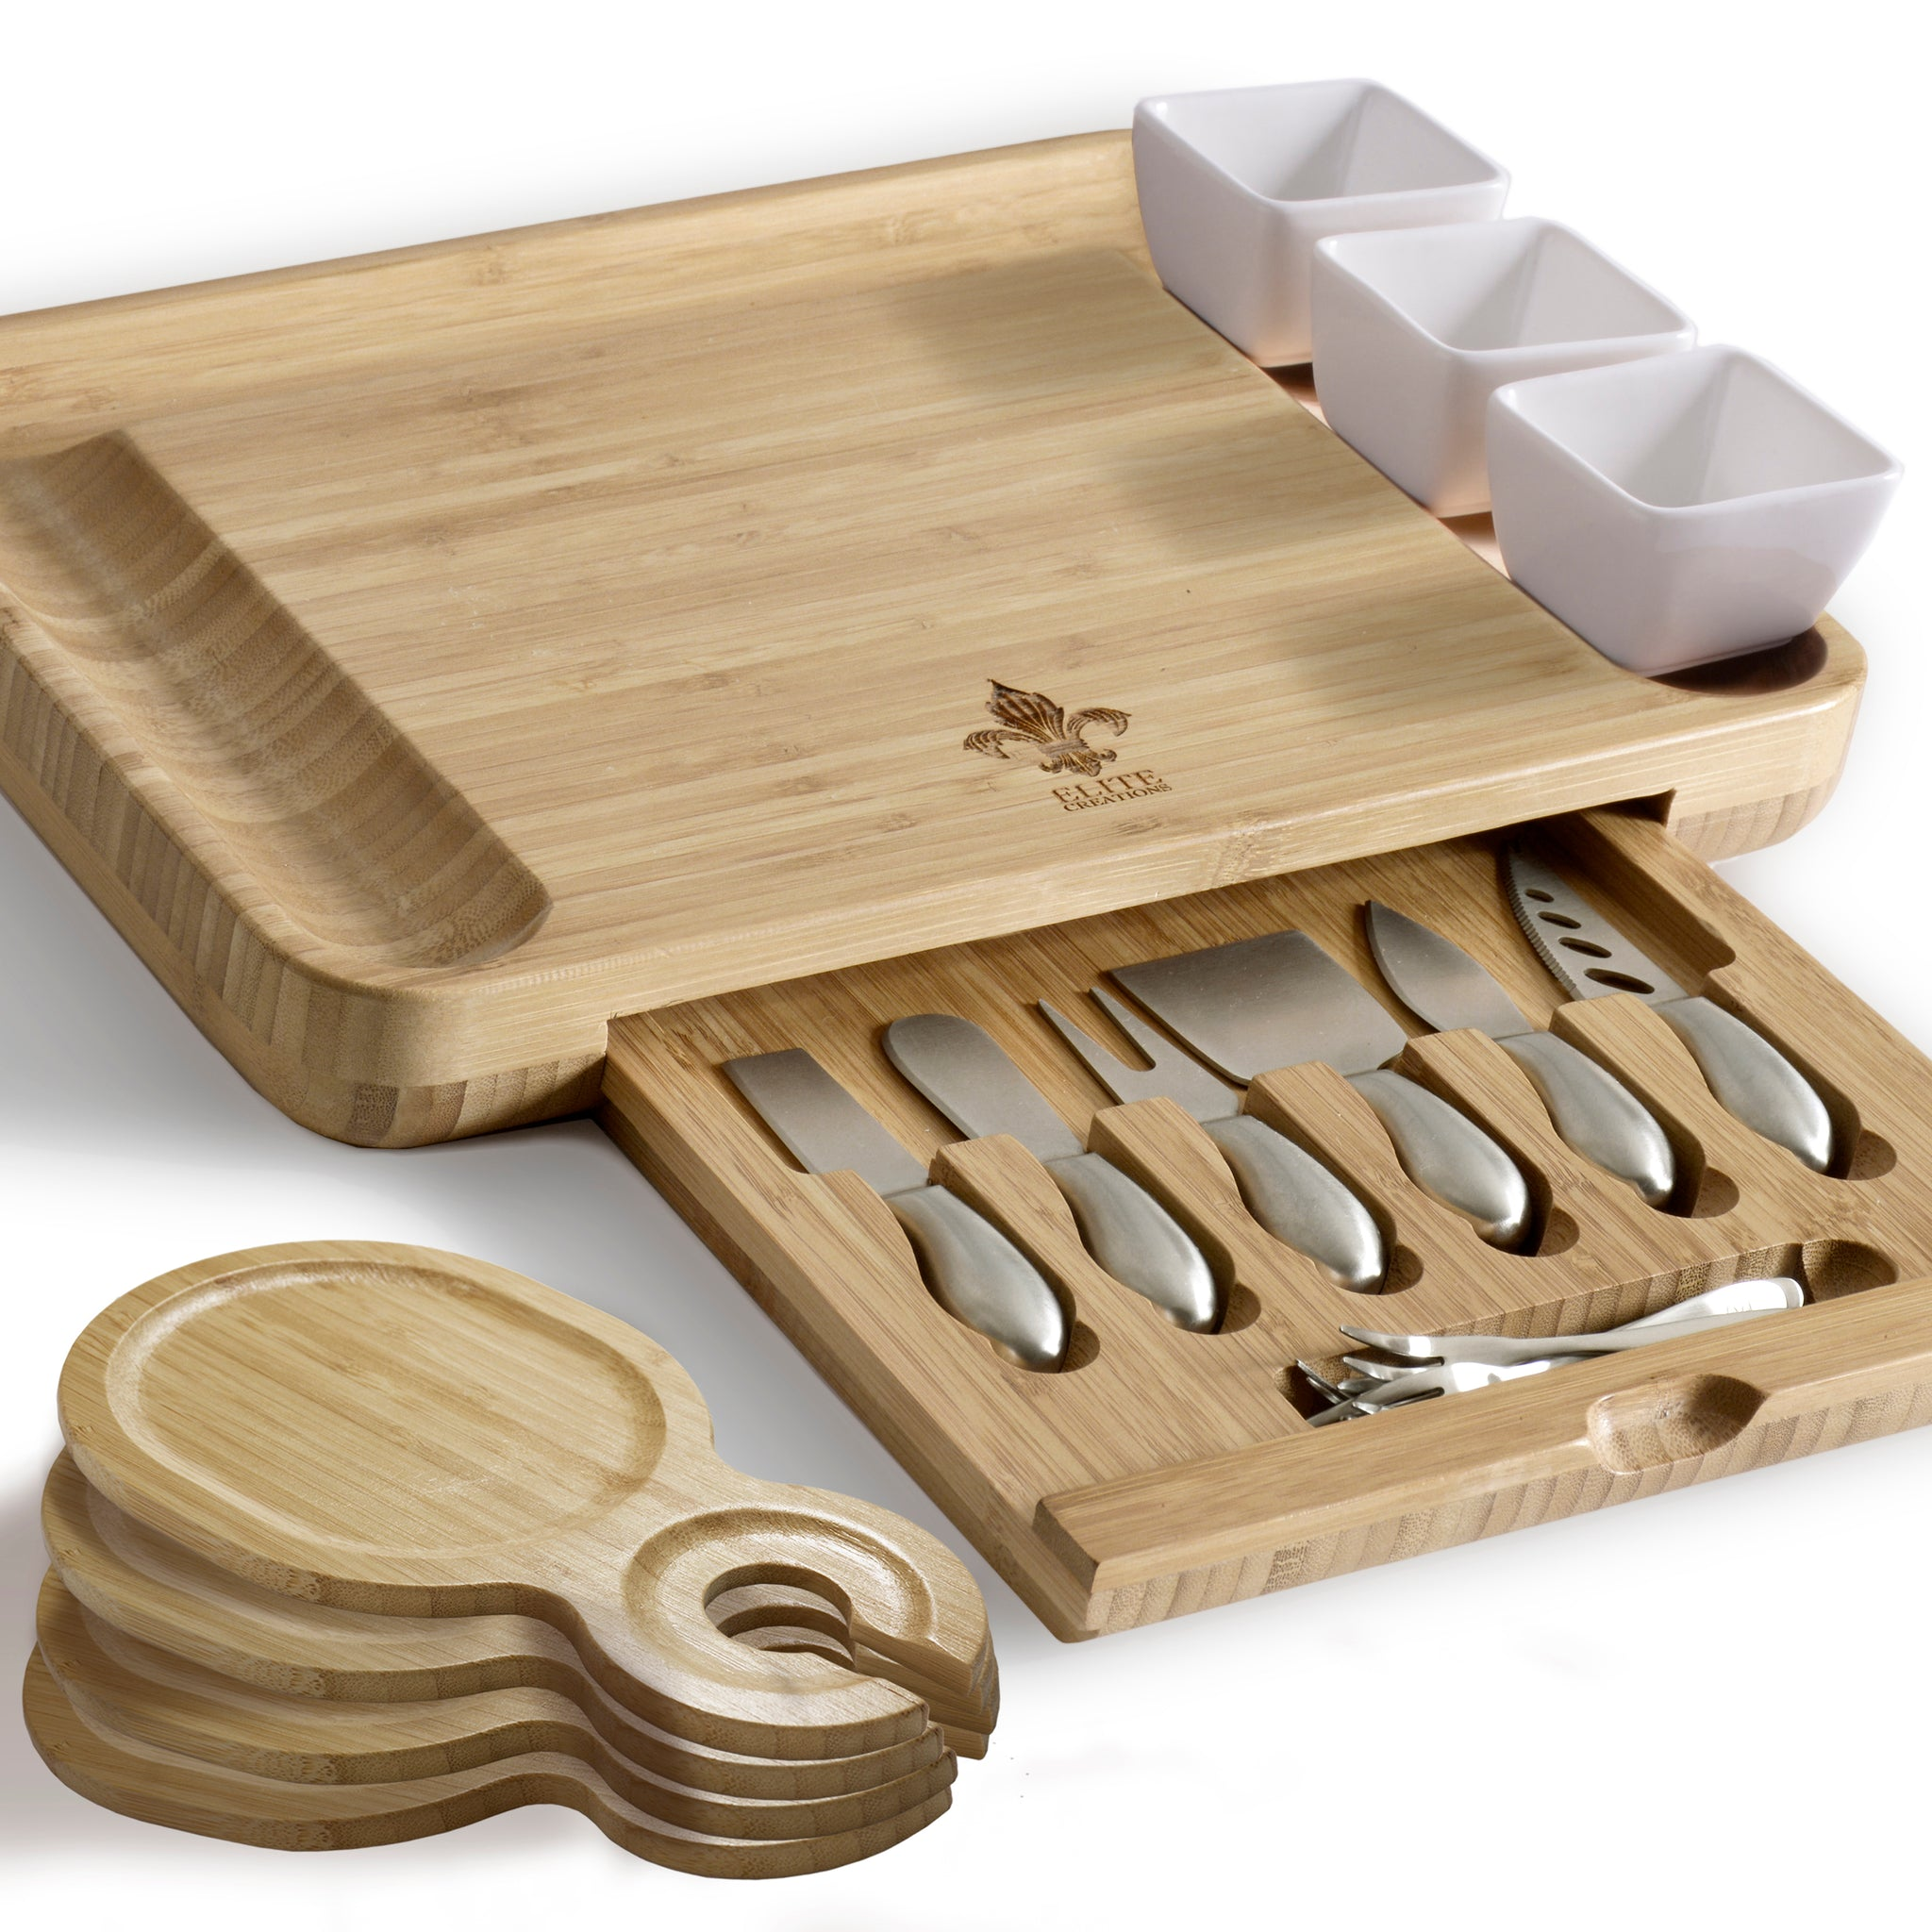 Deluxe Cheese Board Set -6 Knives & 3 Ceramic Dishes & 2 Fruit Trays